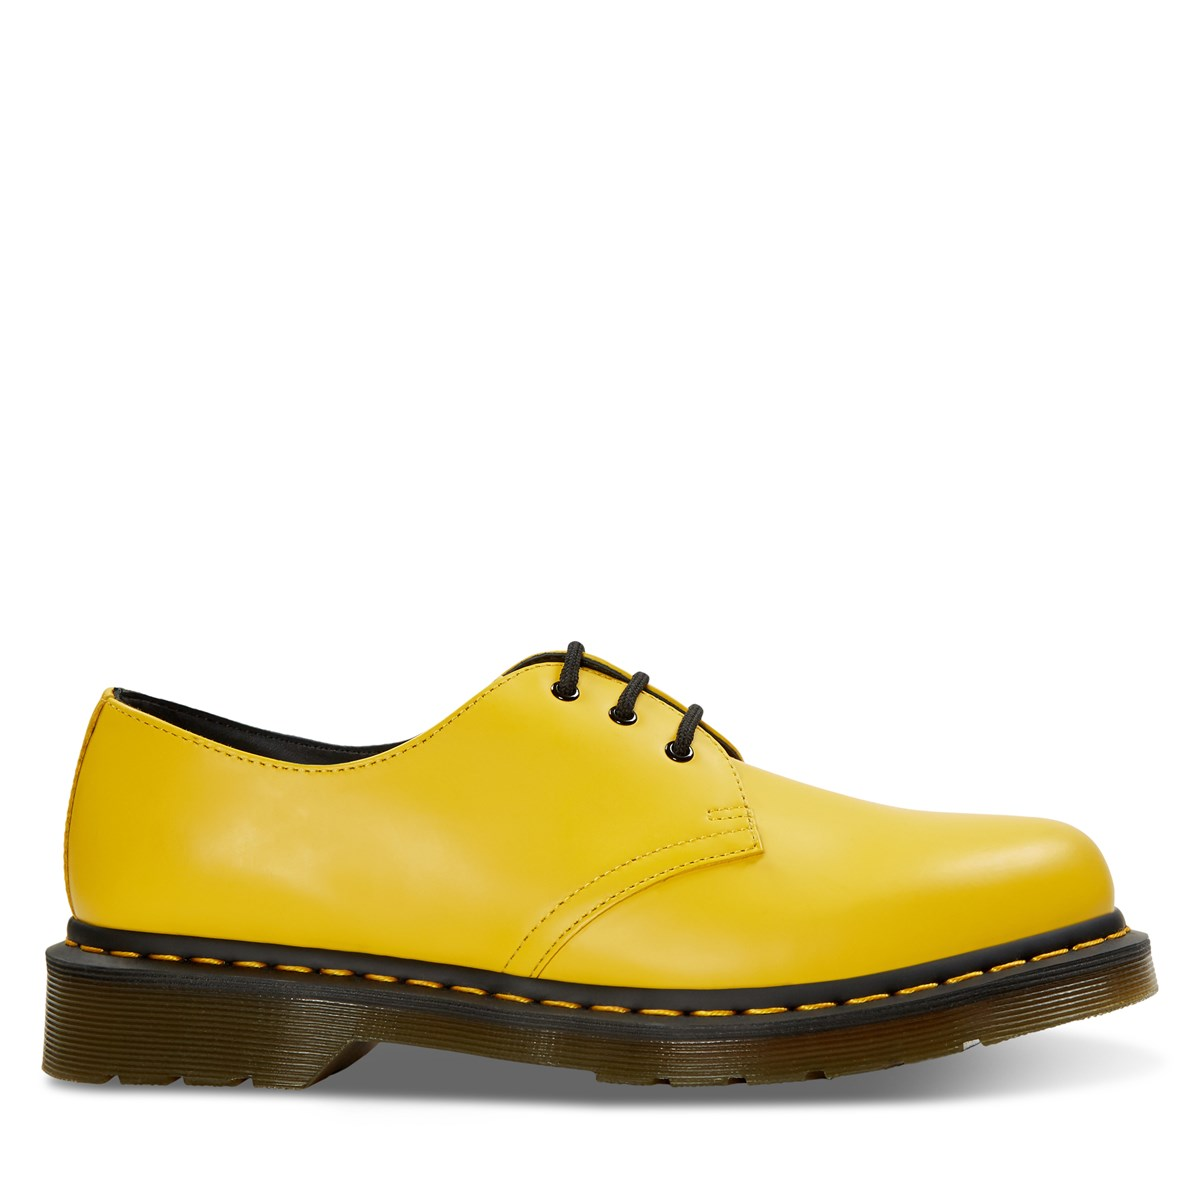 Women's Smooth 1461 Shoe in Yellow